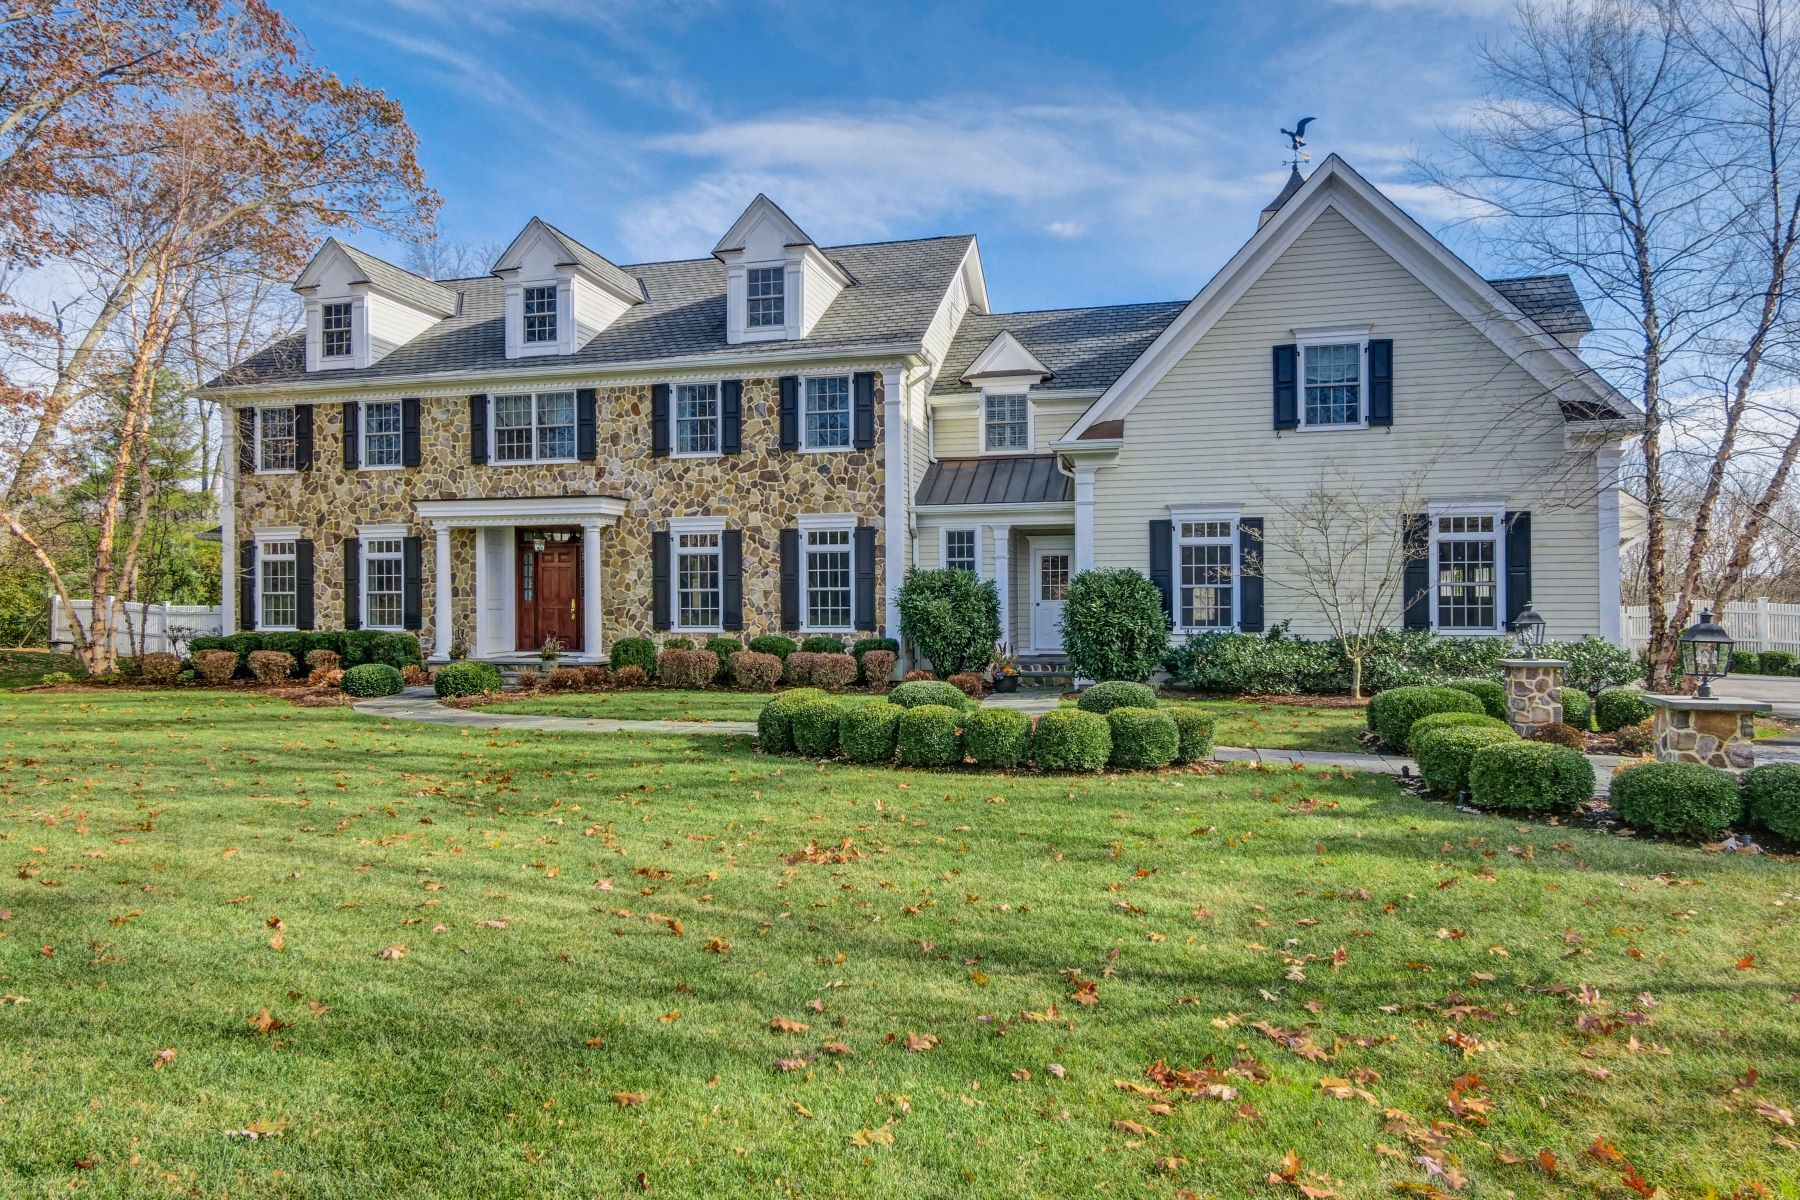 Single Family Homes for Sale at Tranquility and convenience 137 Lees Hill Road Harding Township, New Jersey 07976 United States